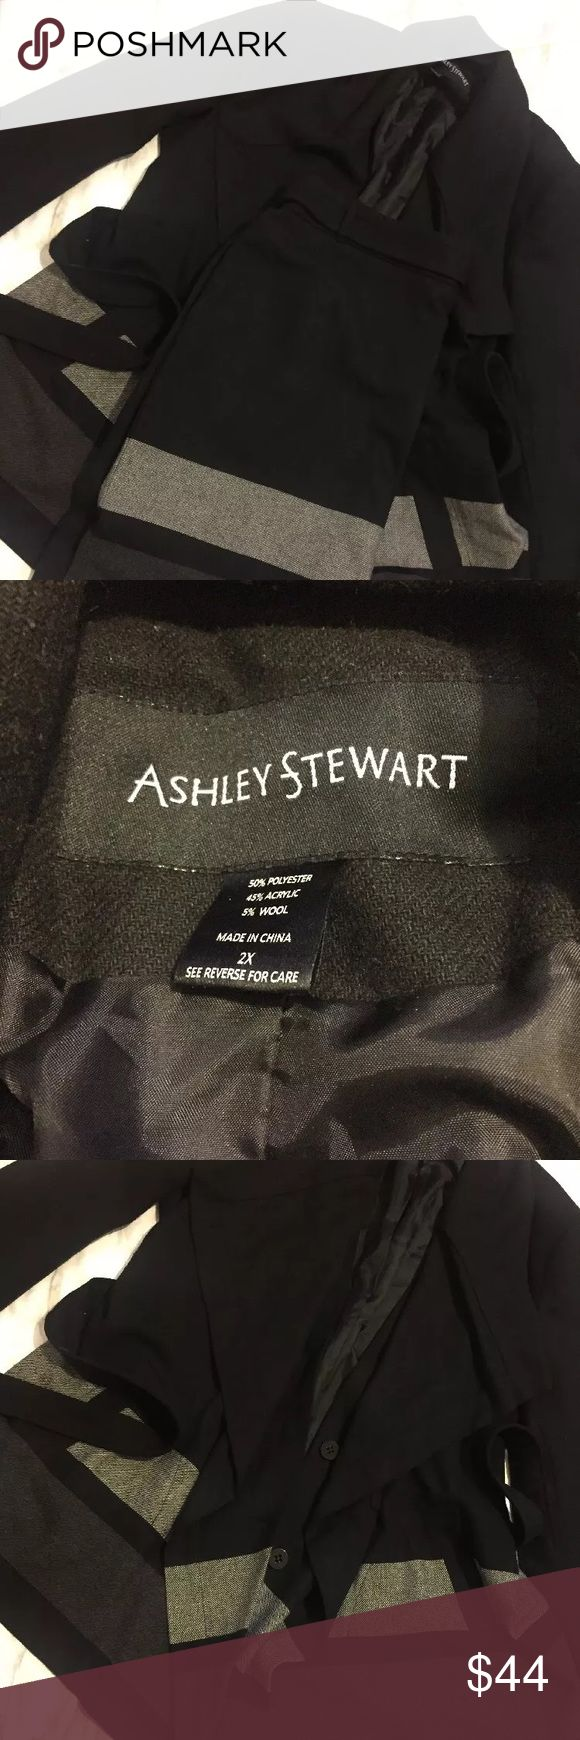 Ashely Stewart 2PC Skirt Set Wool Black Grey 2X 20 Ashley Stewart skirt suit set. JACKET 2X skirt 20. Long sleeve jacket. Belted skirt and coat. Tweed pattern in color blocking. Black background, gray and white; both jacket and skirt lined. Ashley Stewart Skirts Skirt Sets